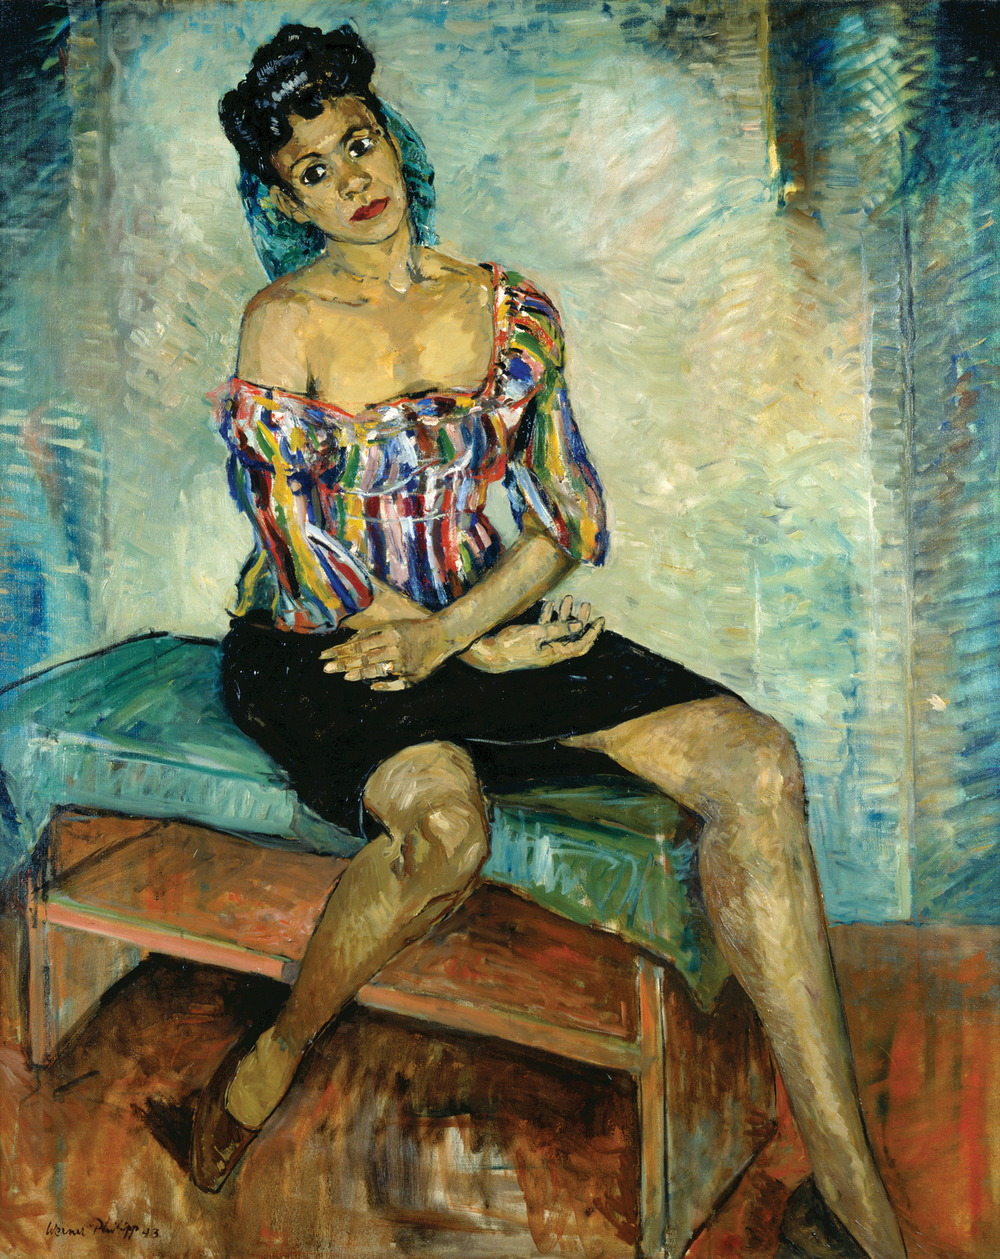 Oil portrait of Katherine Dunham by German-born artist Werner Philipp, showing Dunham in costume, possibly after a performance.   1943. Missouri History Museum.